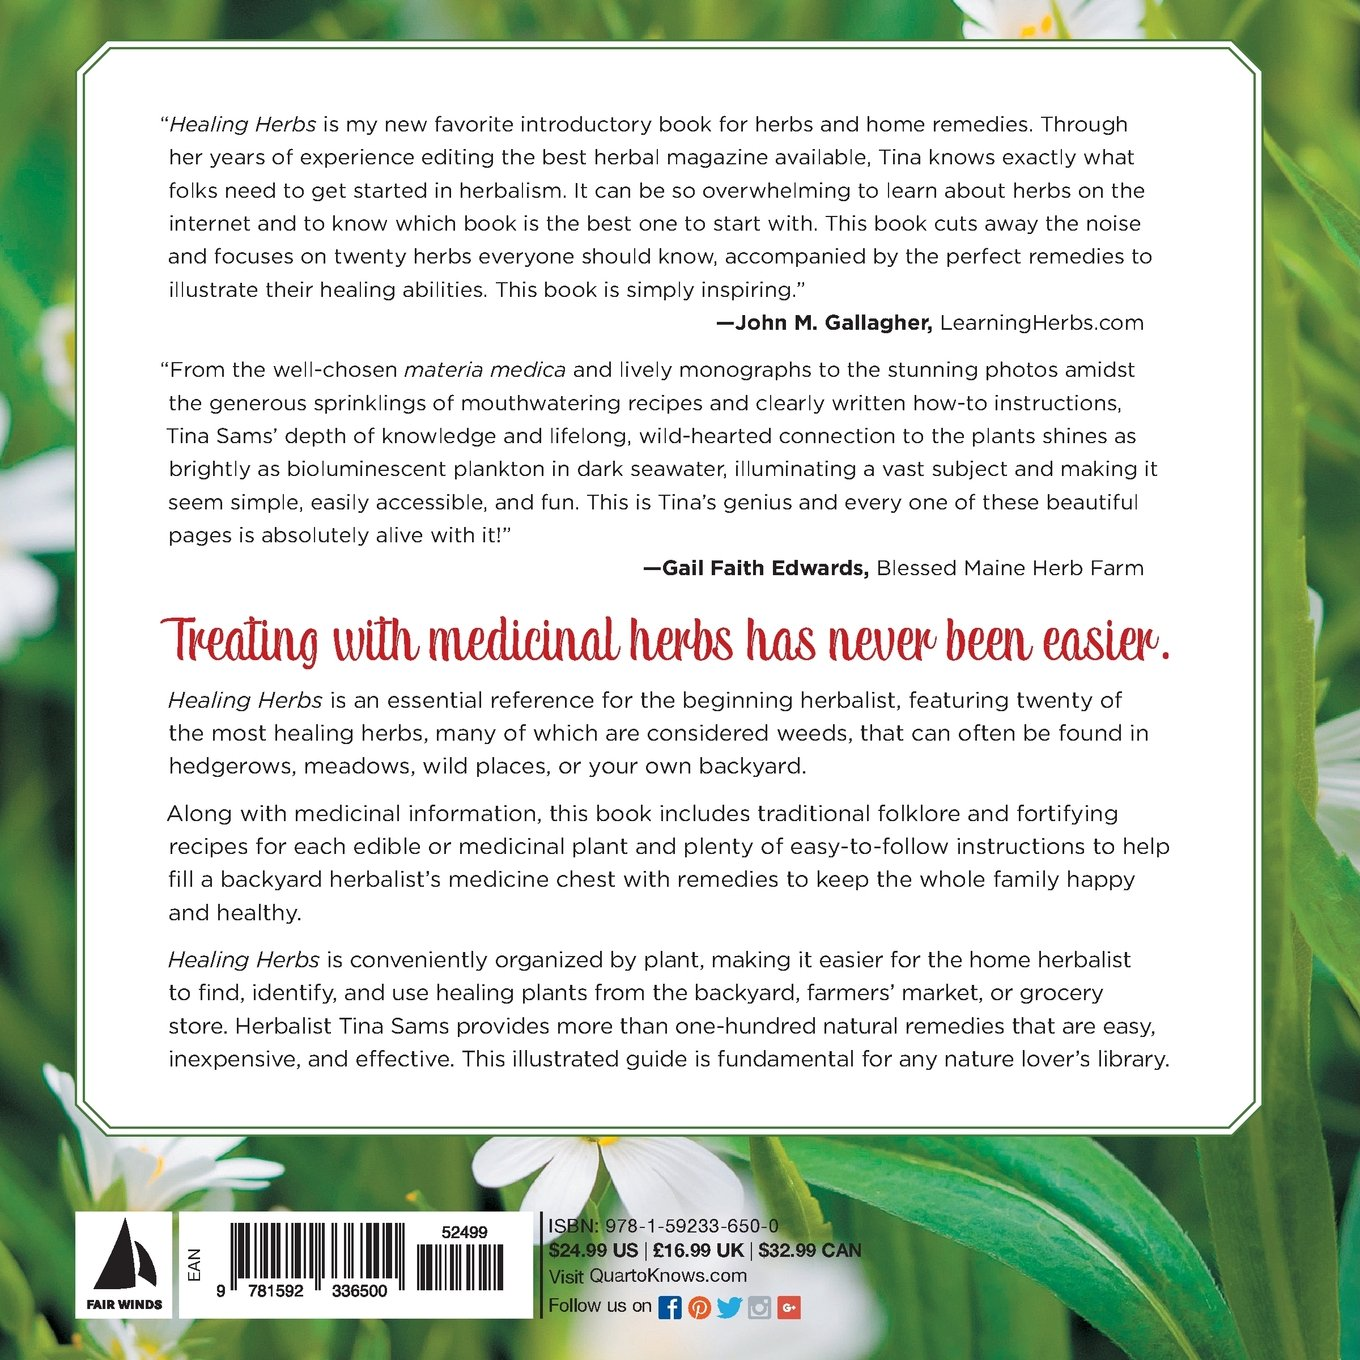 Healing Herbs A Beginners Guide To Identifying Foraging And Using Medicinal Plants More Than 100 Remedies From 20 Of The Most Tina